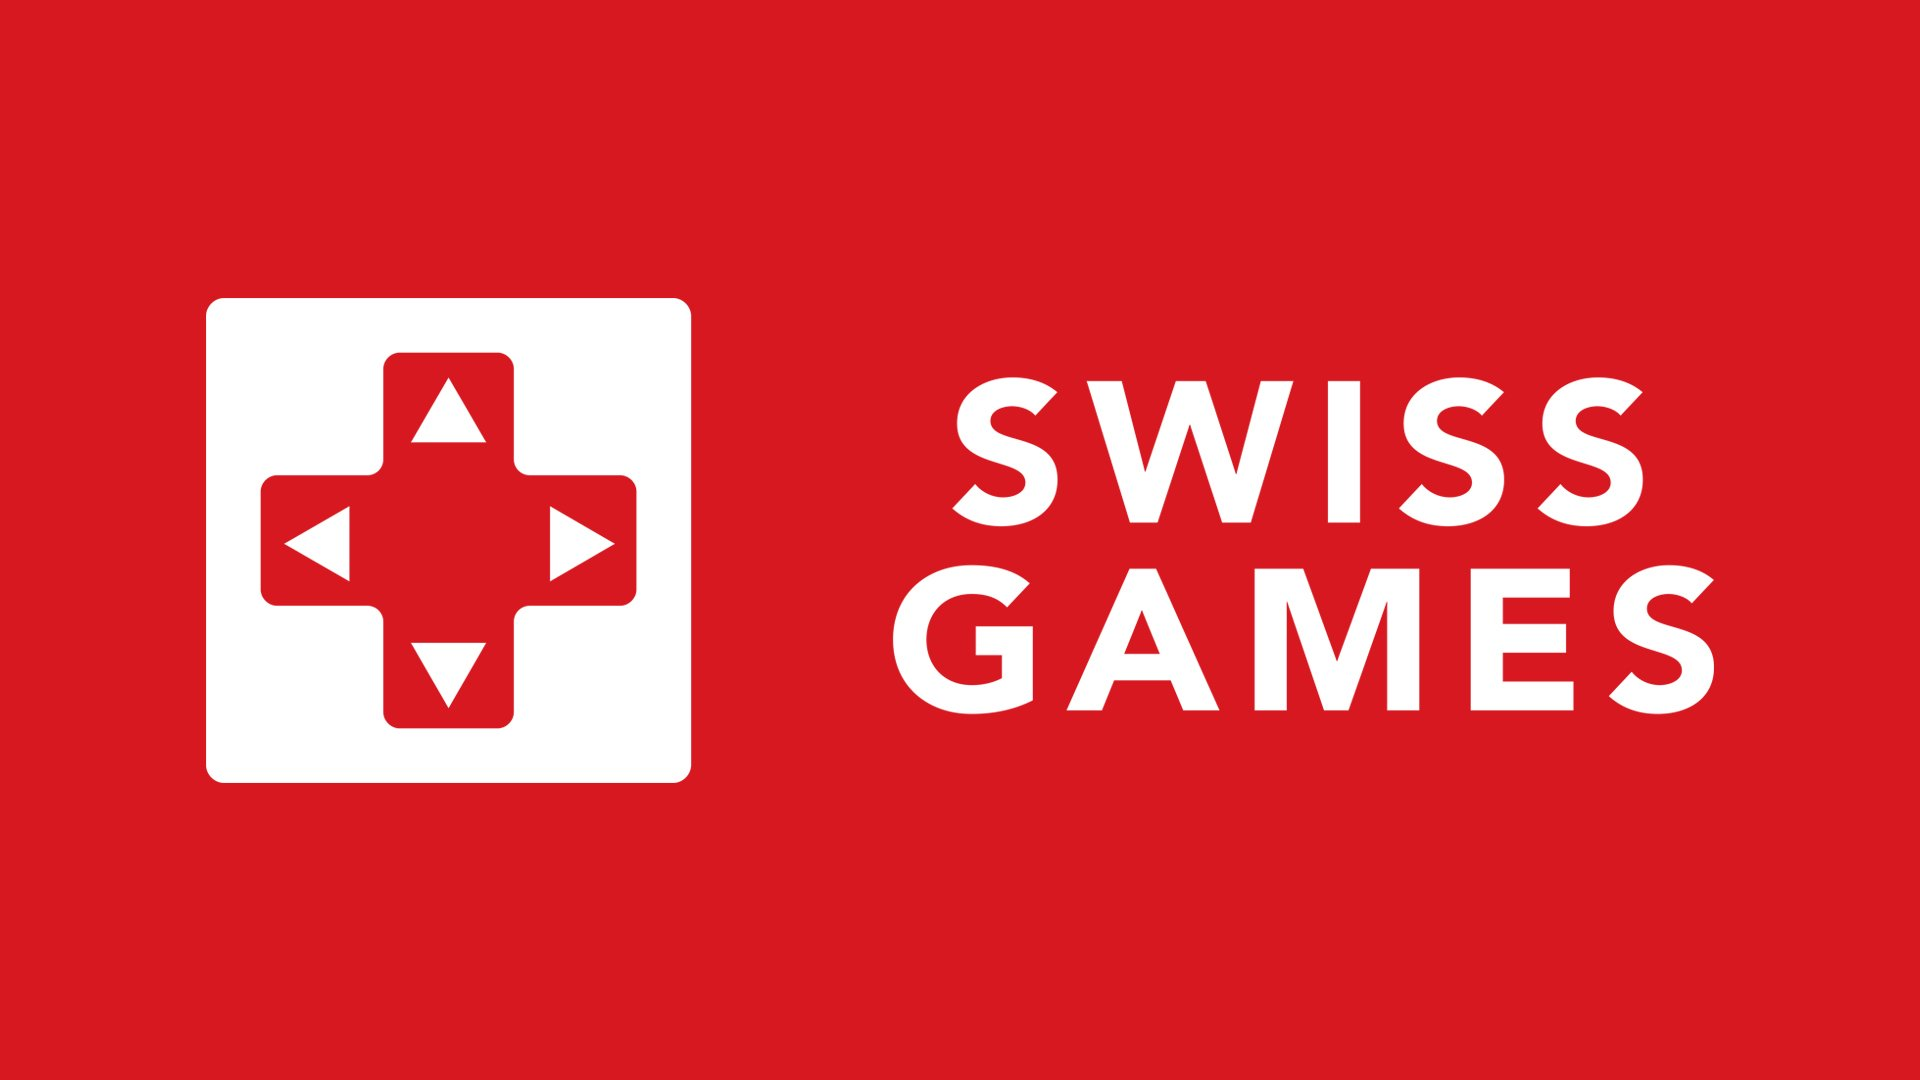 Play #zhdkgames @gamescom. Find us in Hall 4.1, D22 & E21 https://t.co/5ZQUSKDEw3. #excited #swissgames #gamedev https://t.co/0RJC5ntw2X